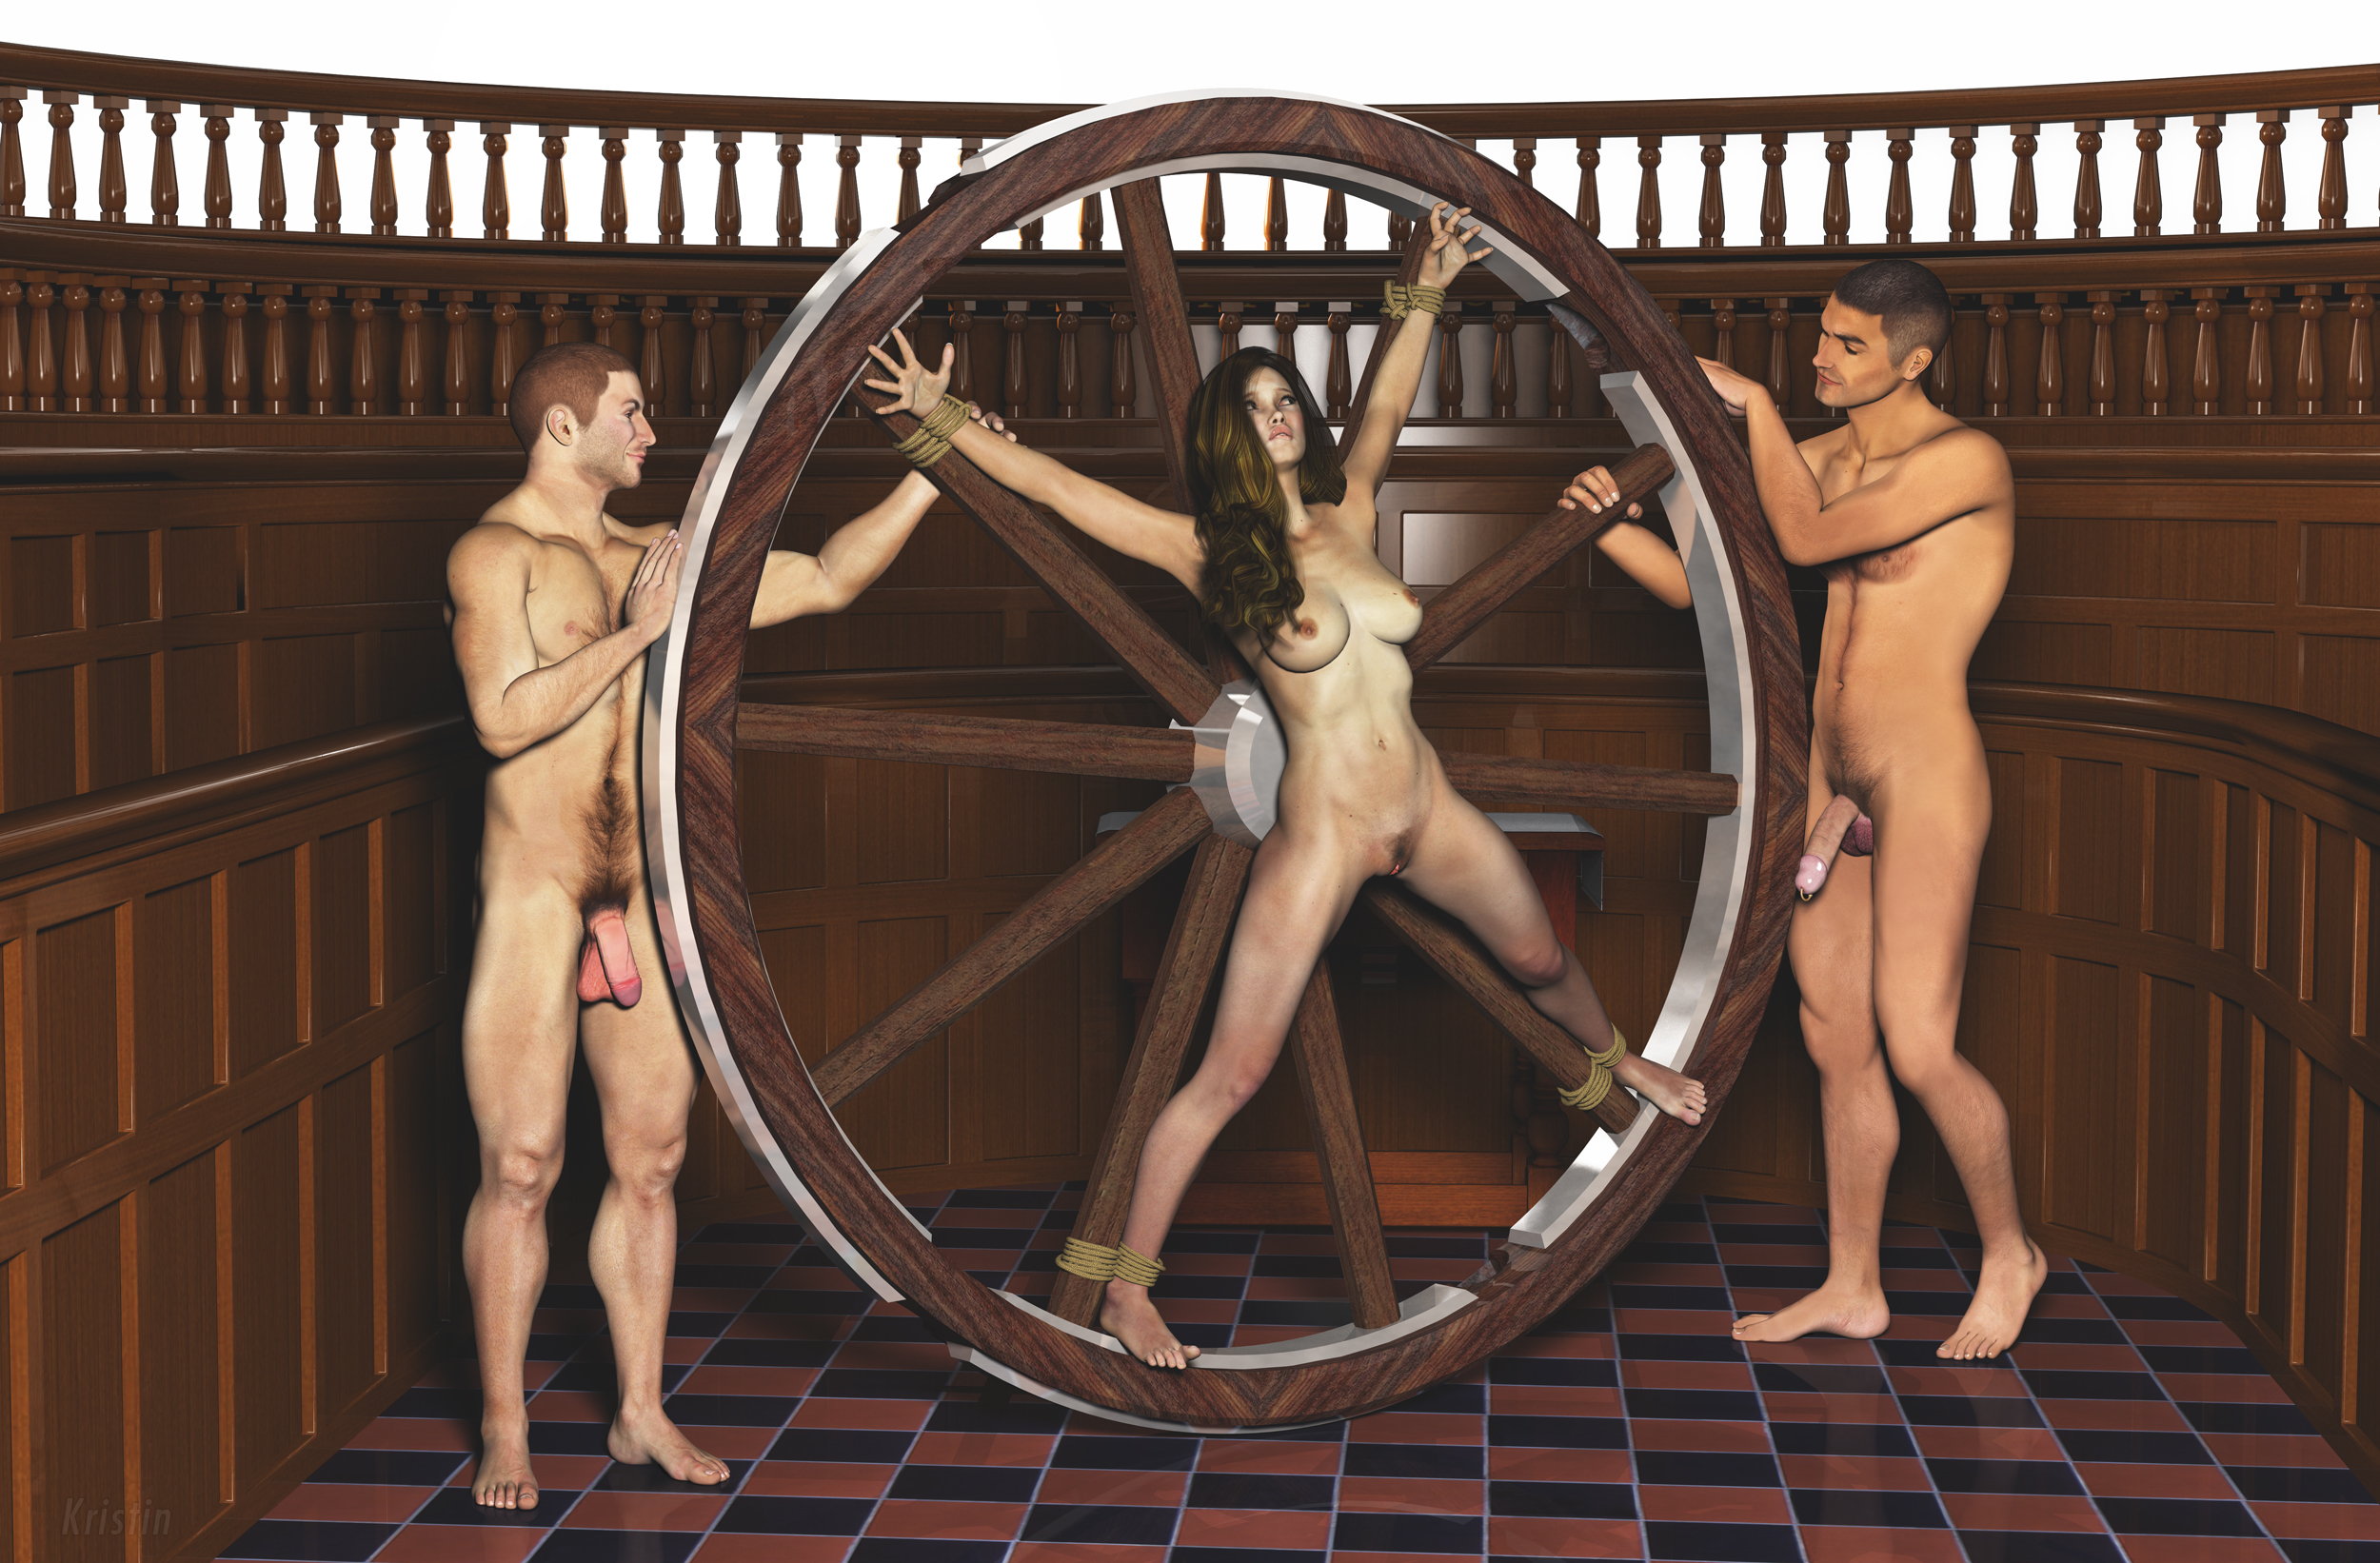 Wheel bondage sex